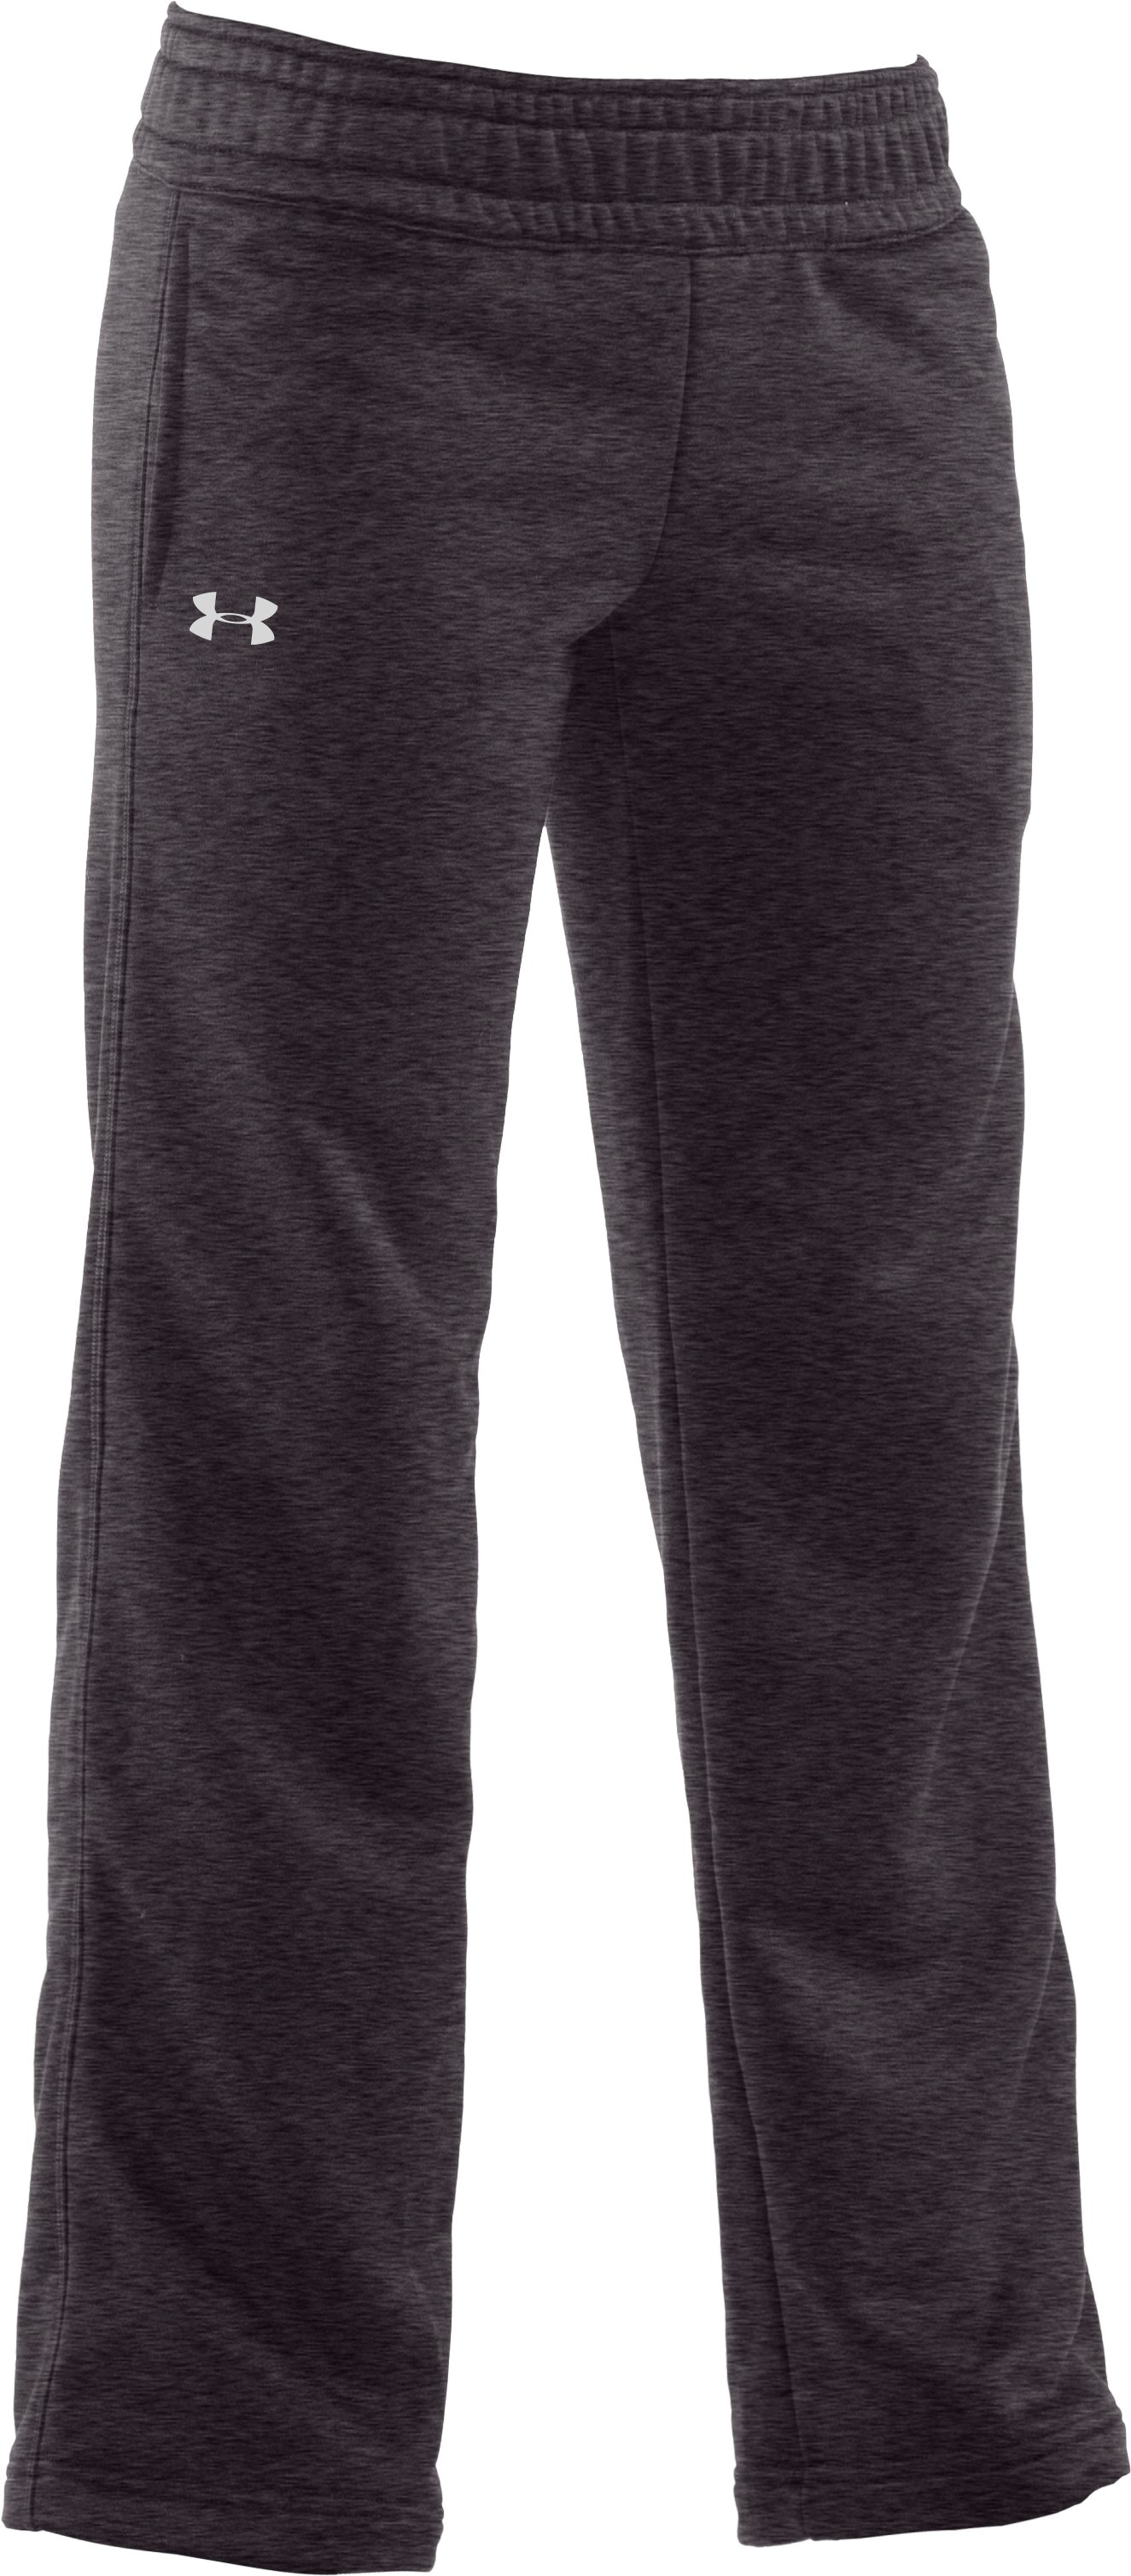 Girls' Armour® Fleece Pant, Carbon Heather